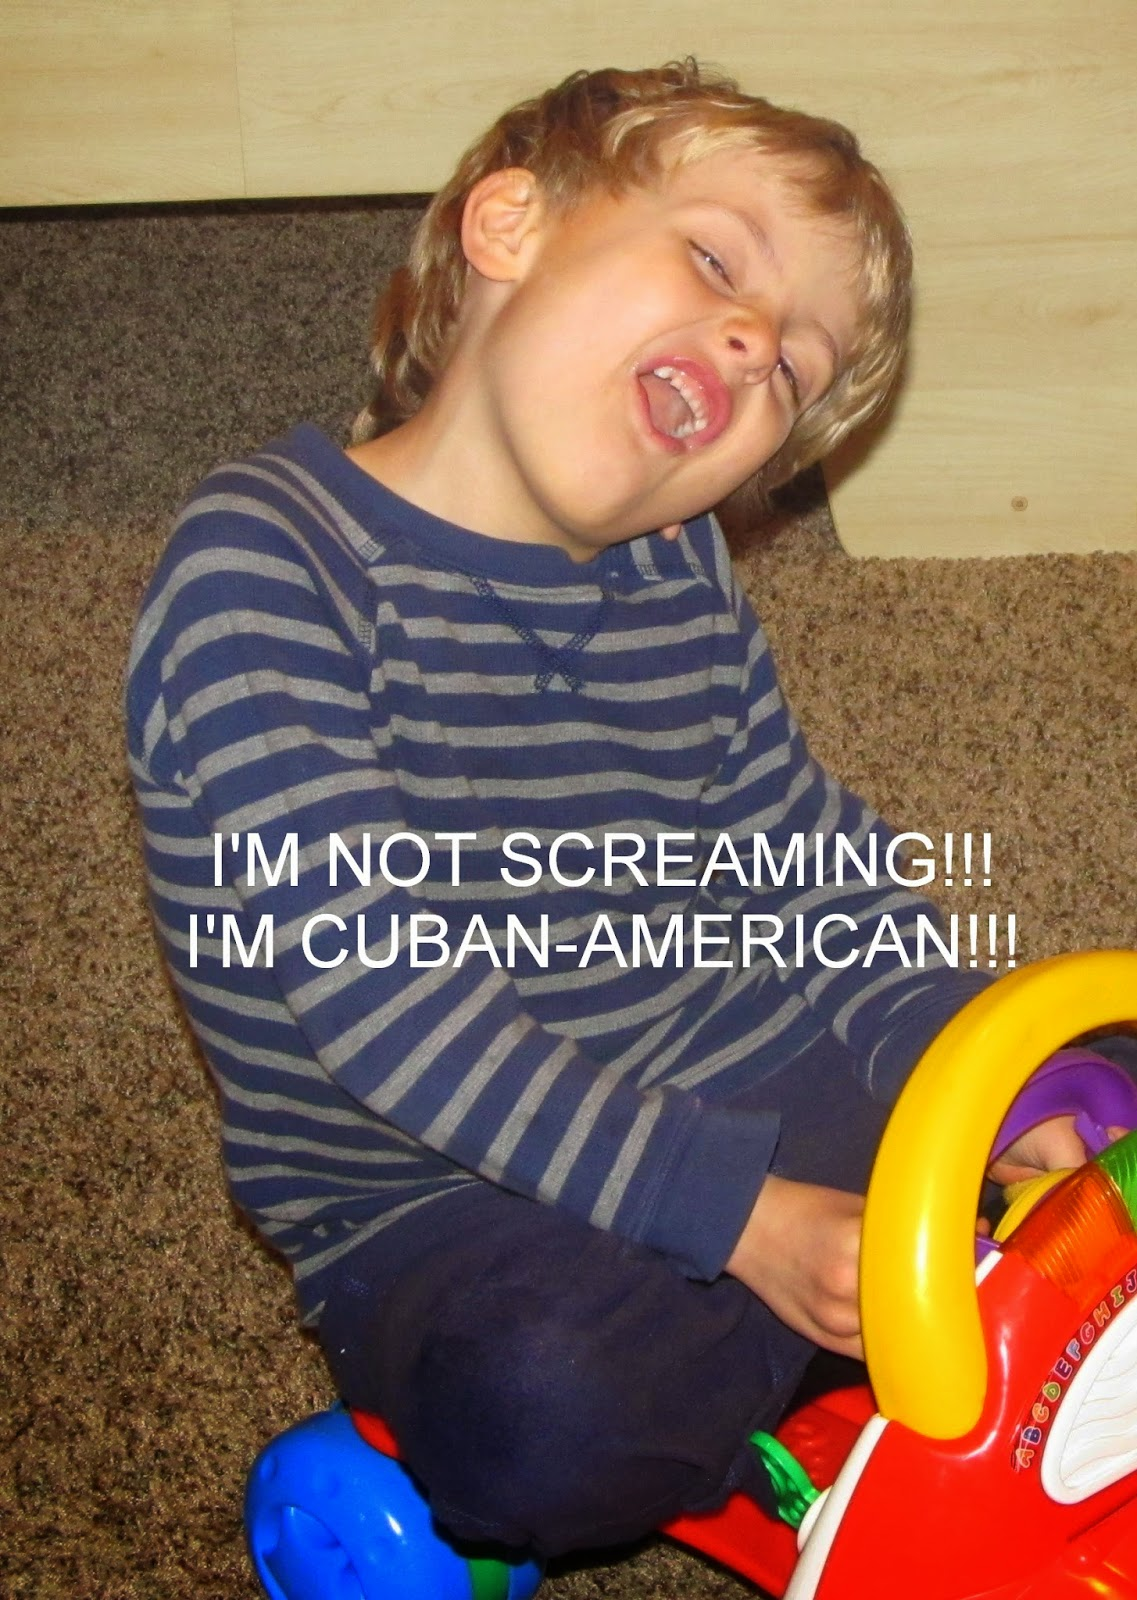 I'm not screaming!!! I'm Cuban-American!!! meme